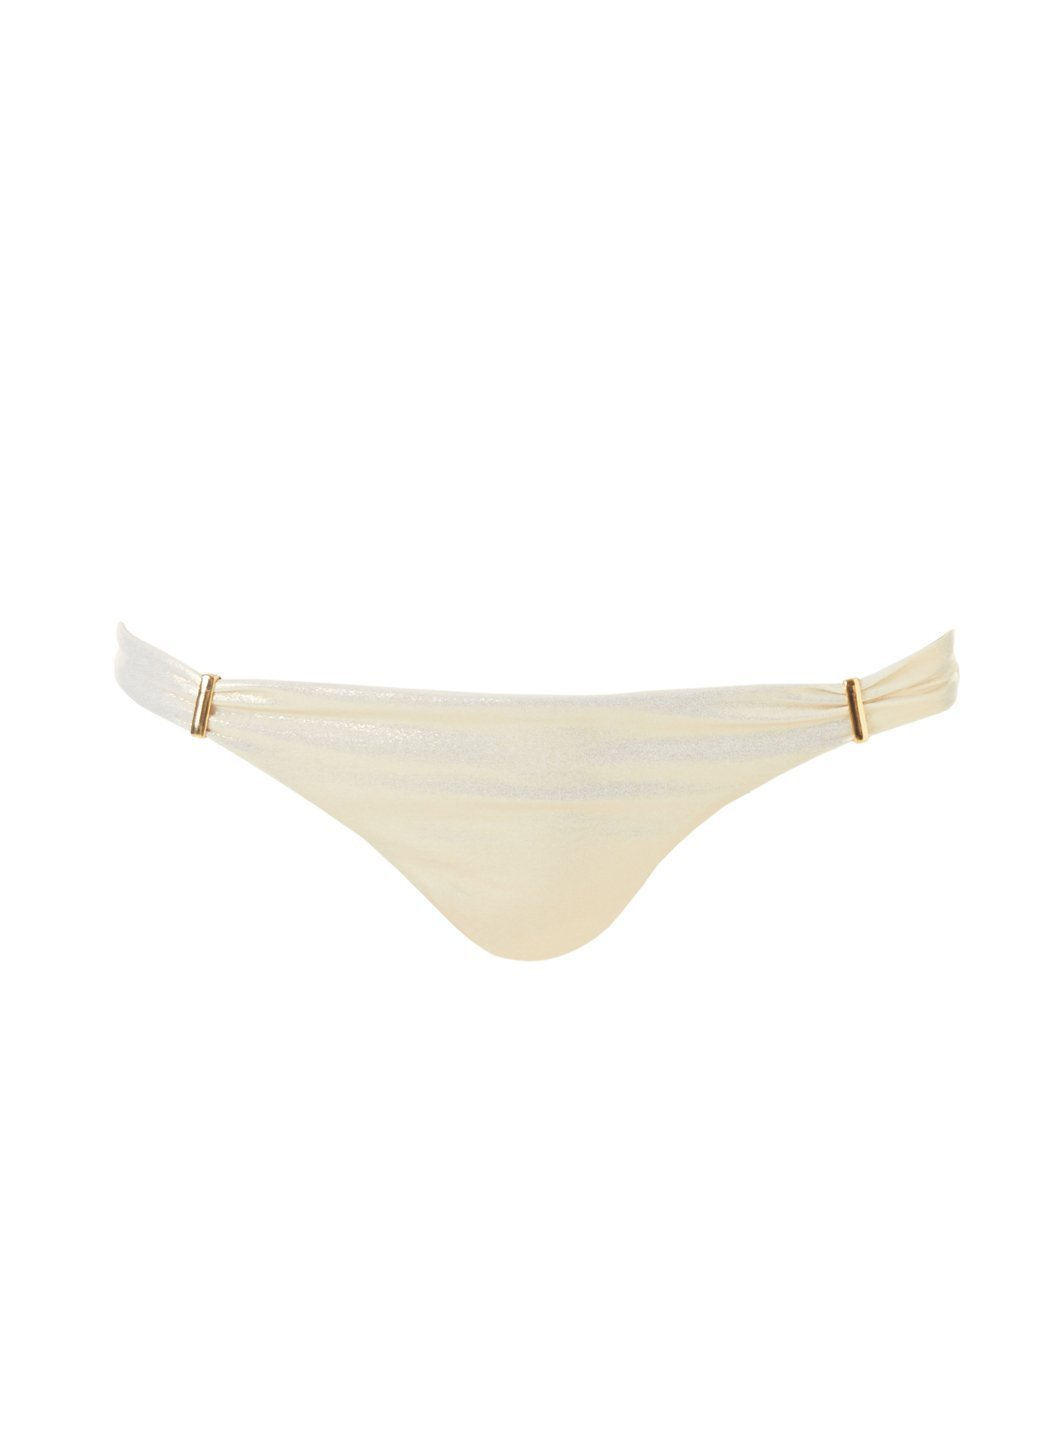 martinique-gold-bikini-bottom - Cut-Out